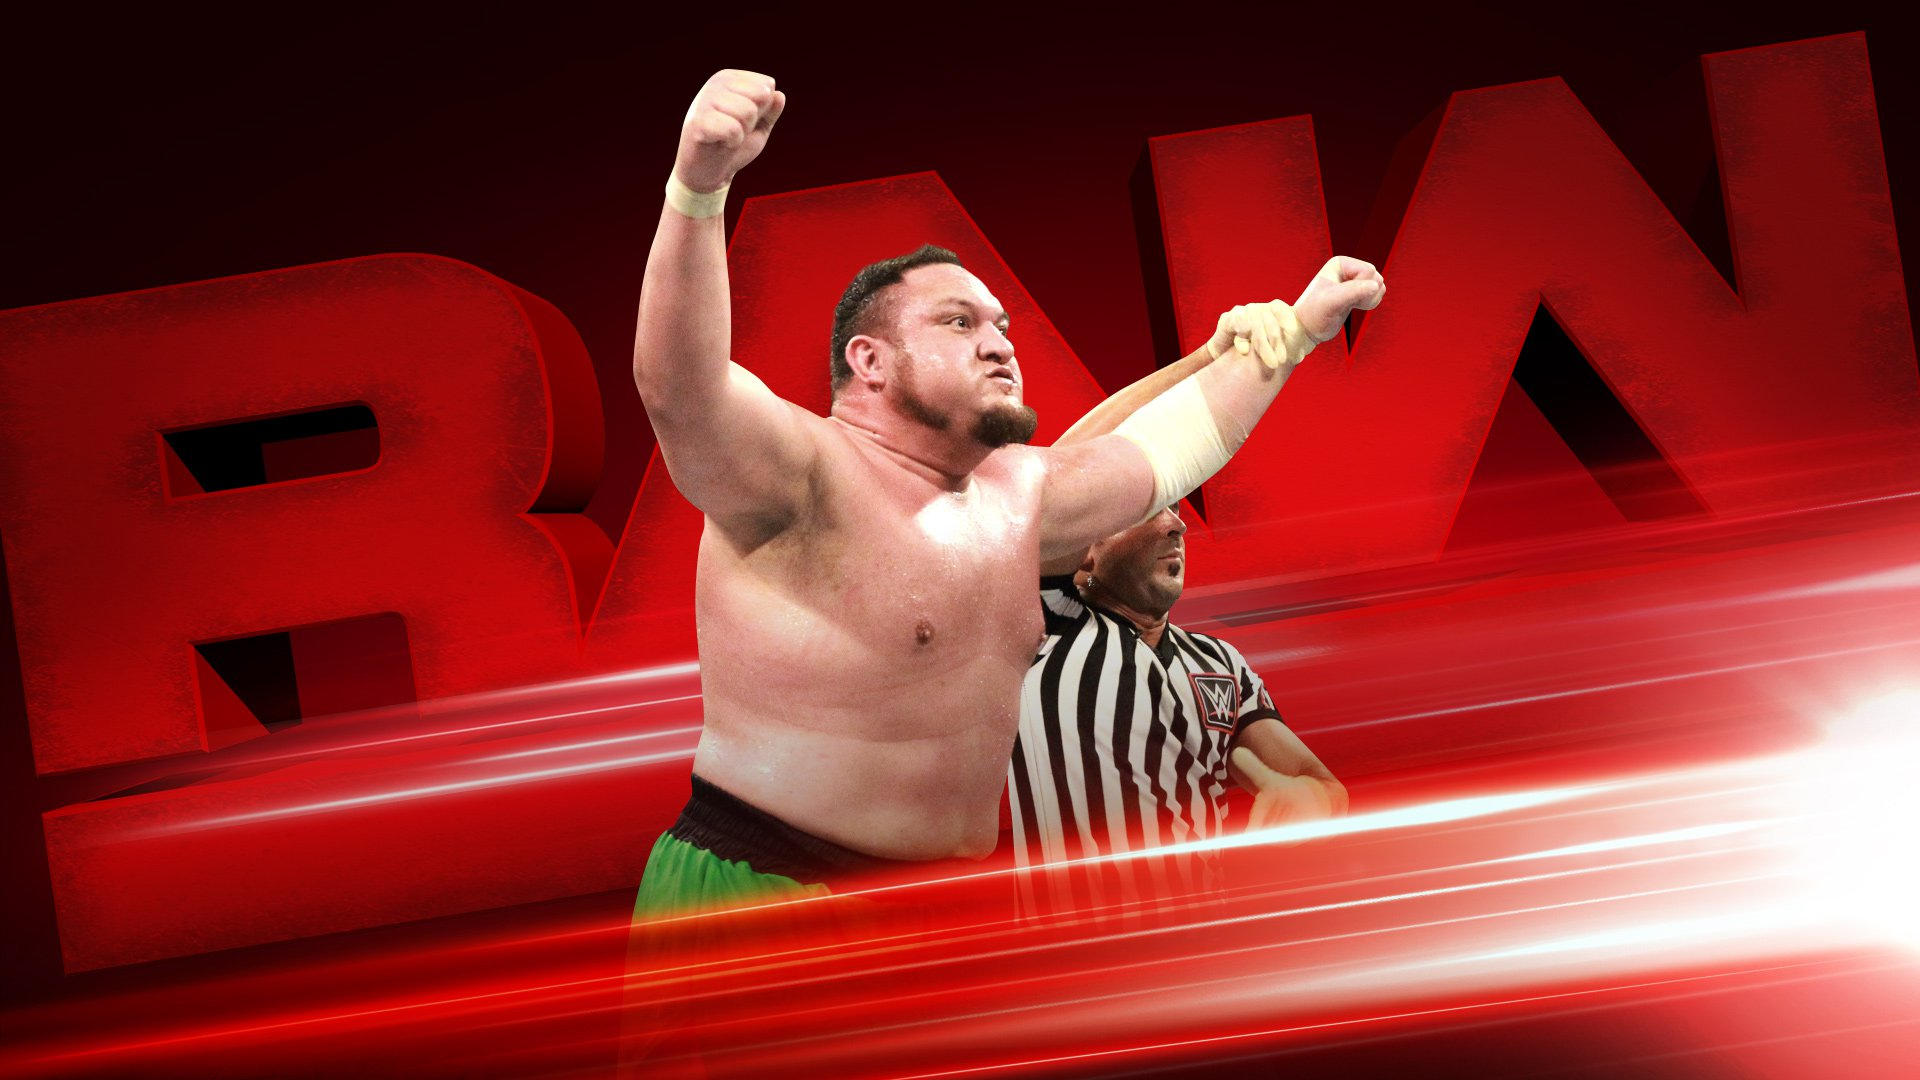 WWE Extreme Rules: Samoa Joe chokes Finn Balor to face Brock Lesnar